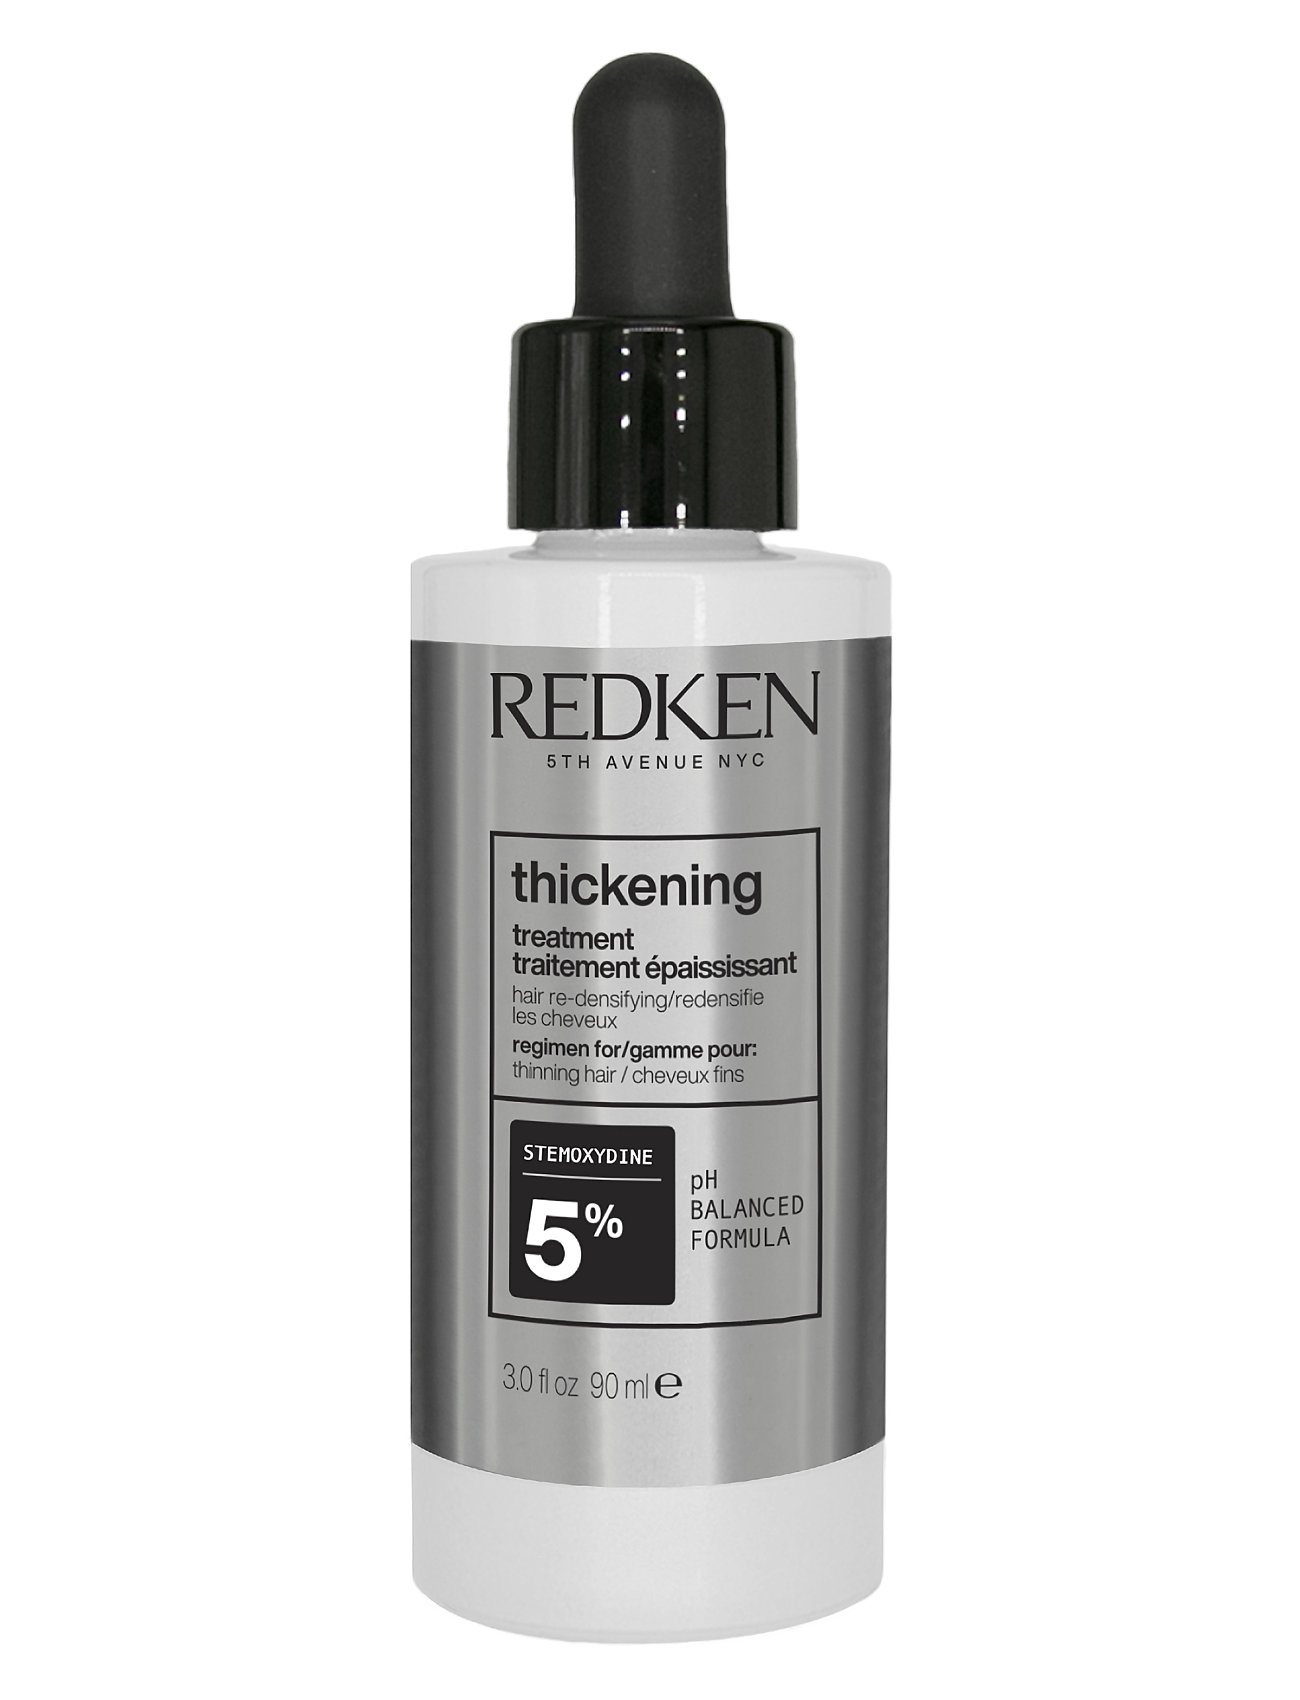 Redken Cerafill Retaliate Stemoxydin Treatment - CLEAR